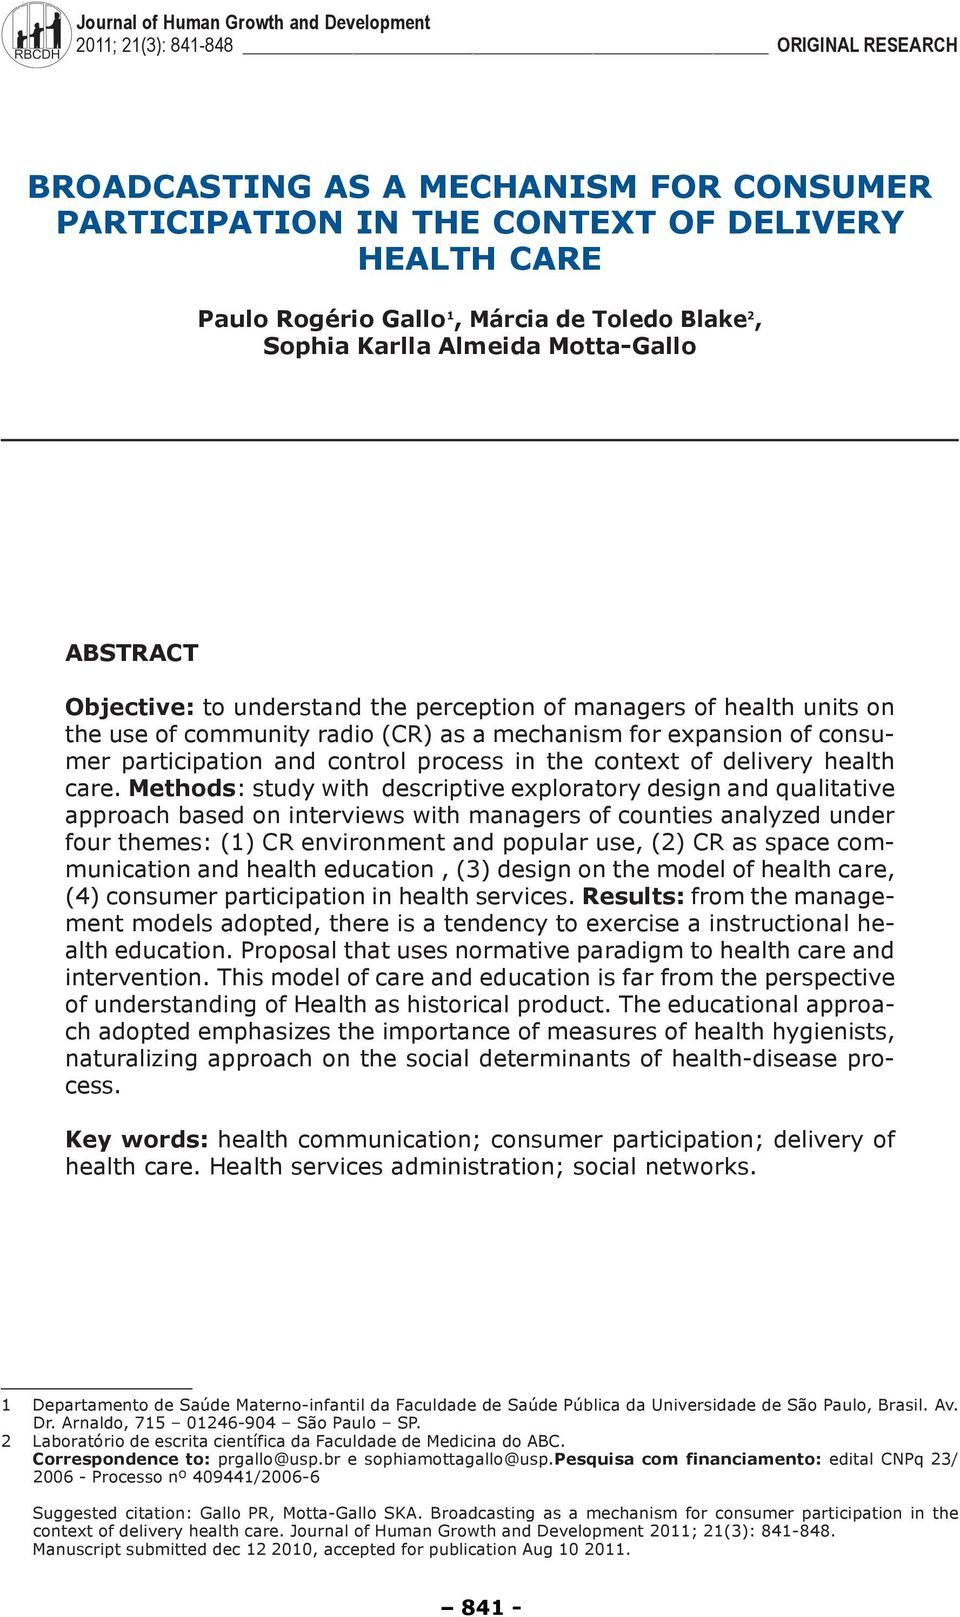 understand the perception of managers of health units on the use of community radio (CR) as a mechanism for expansion of consumer participation and control process in the context of delivery health